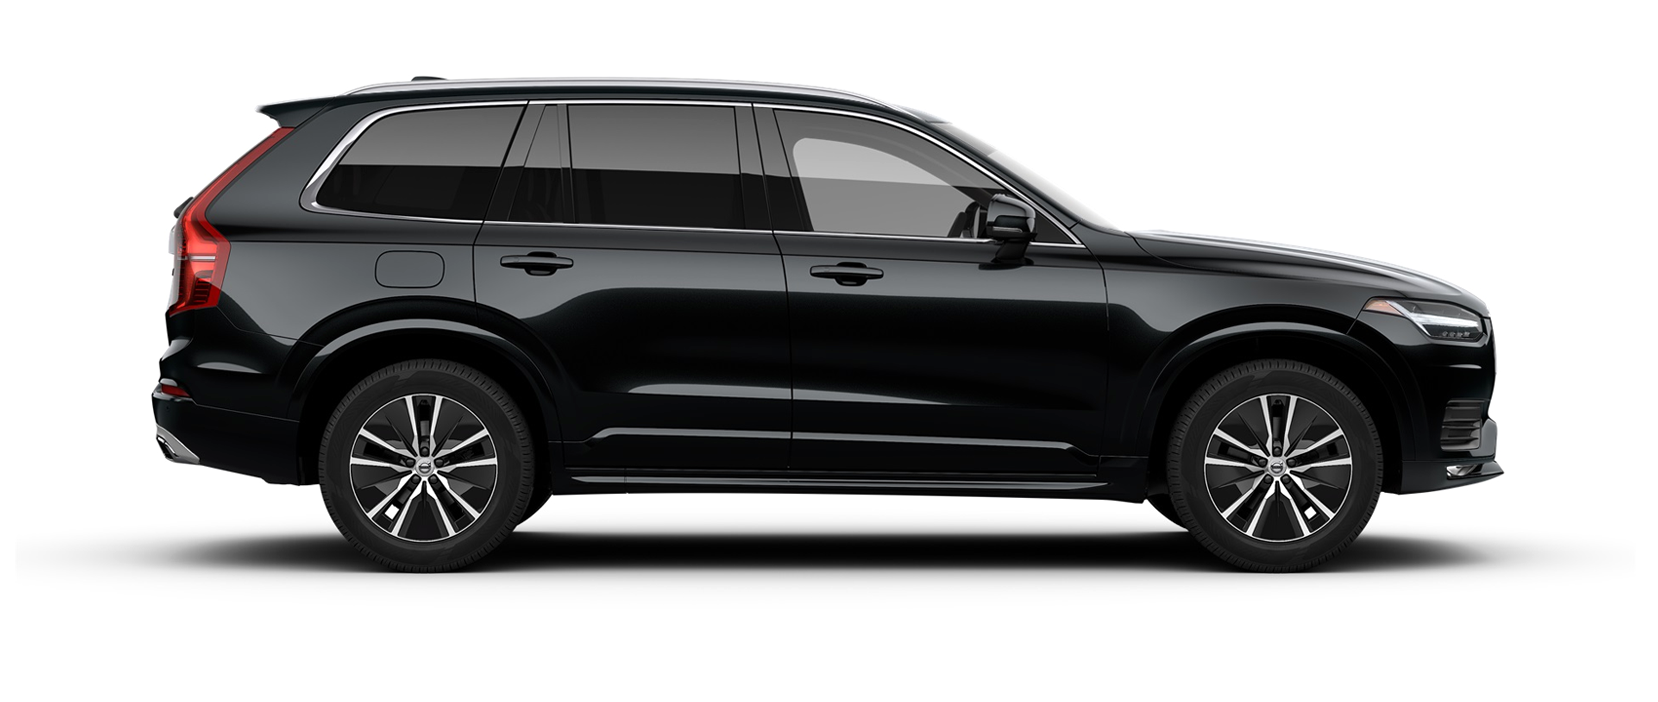 2020 Volvo XC90 T5 Momentum AWD shown